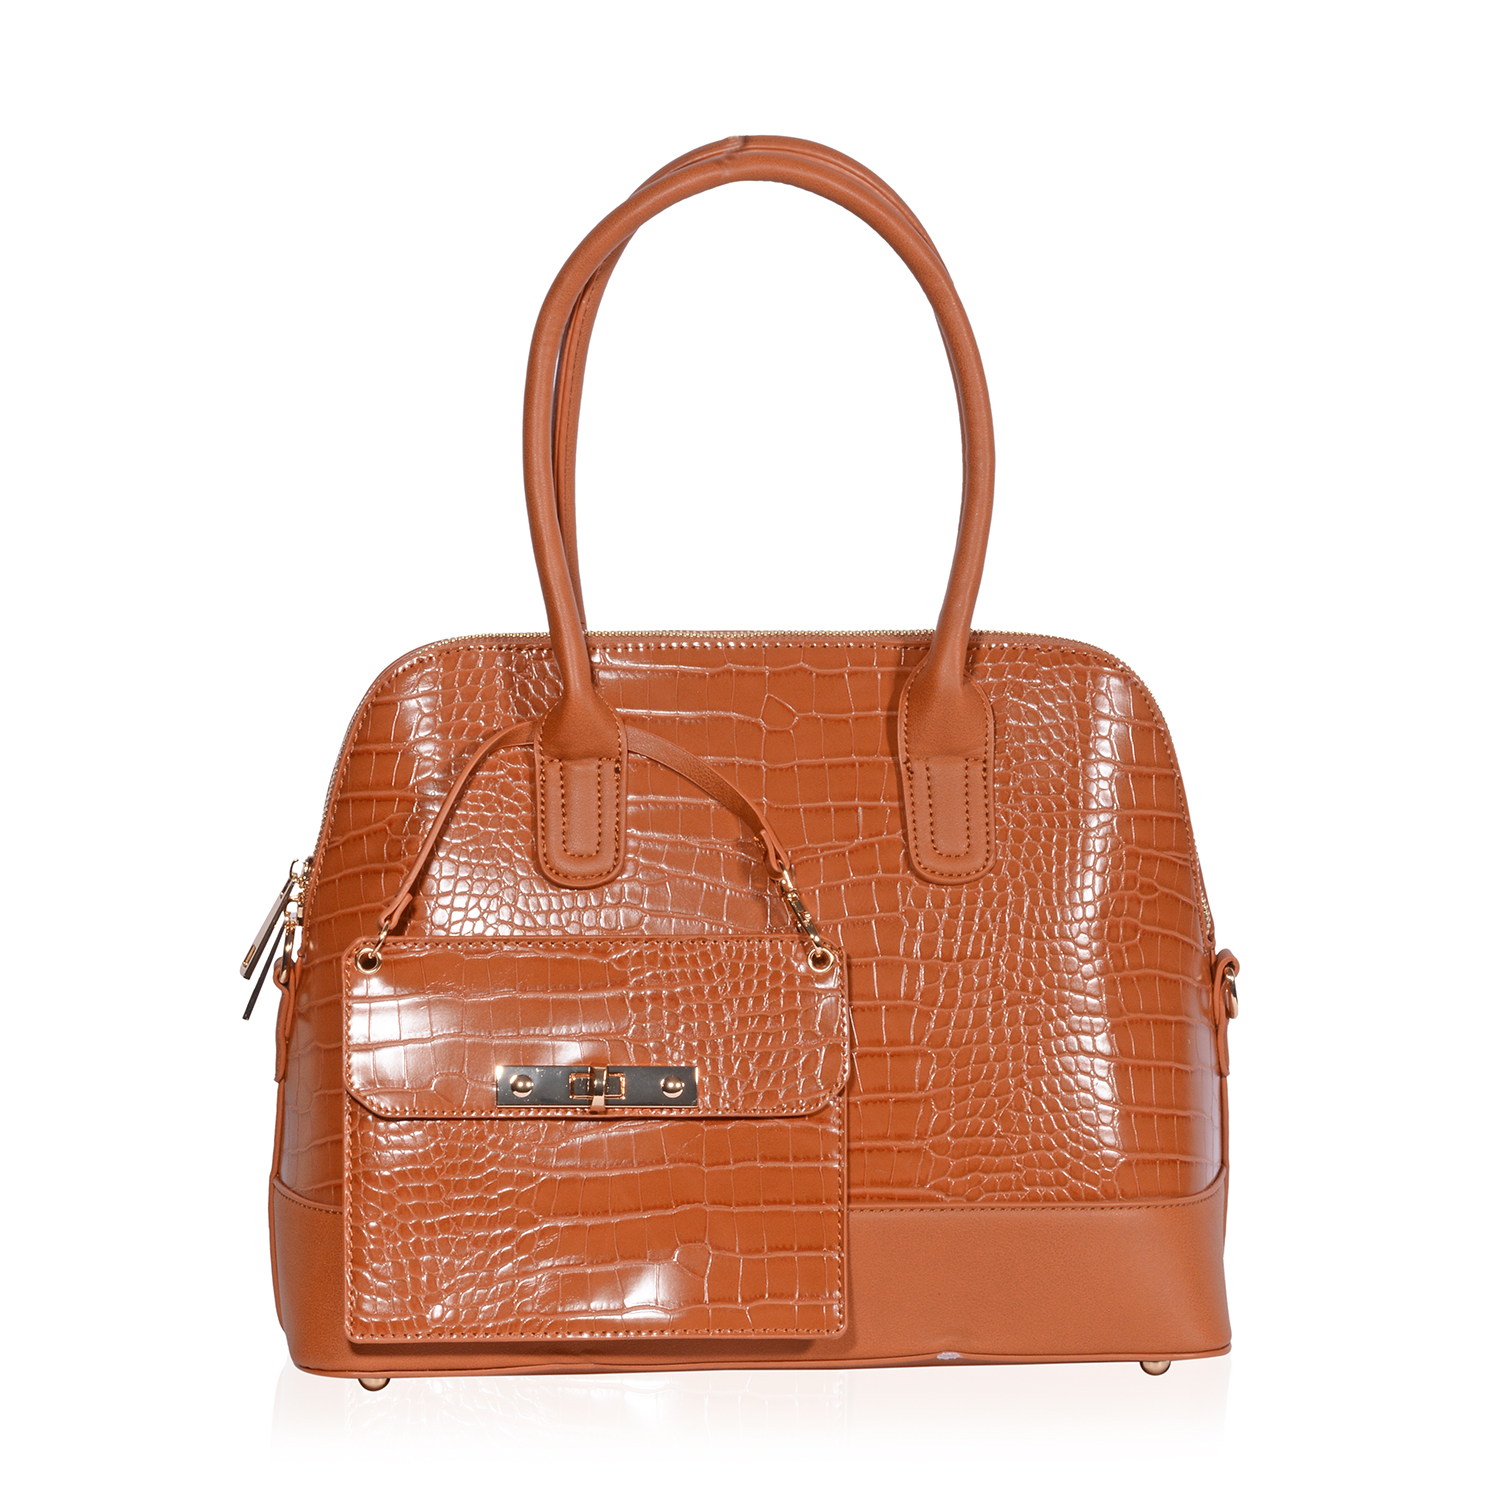 36c4f15c07 Camel Faux Leather Crocodile Embossed Structured Bag (14x6x10.5 in) with  Detachable Matching Wristlet Wallet (7x5.5 in)